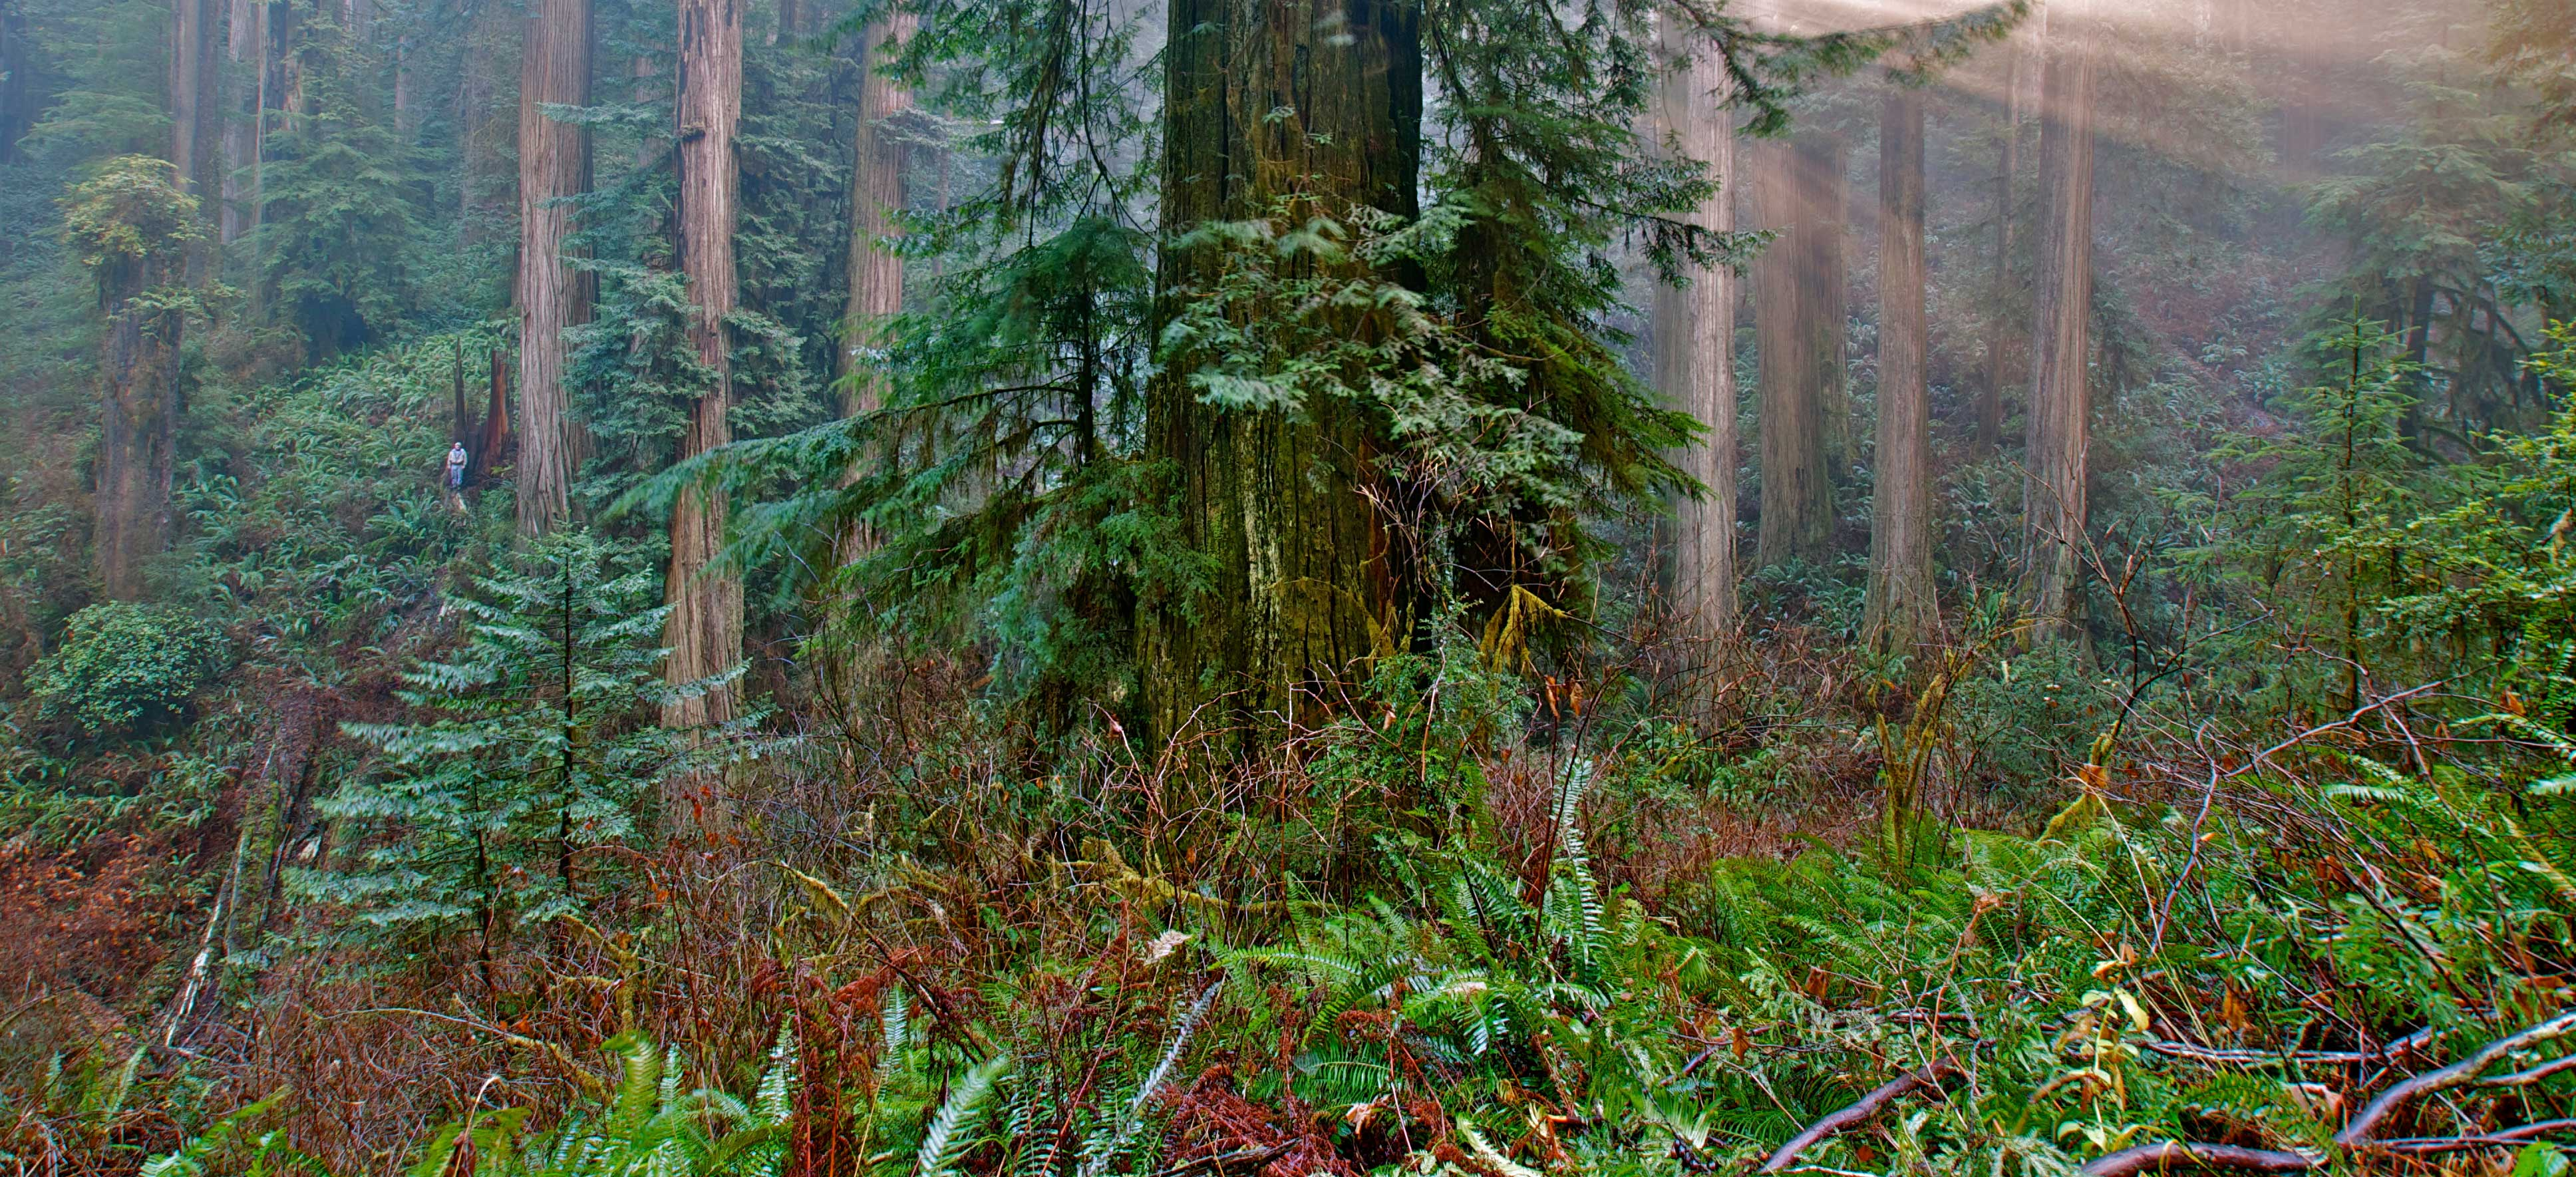 Image from Jedediah Smith Redwoods SP